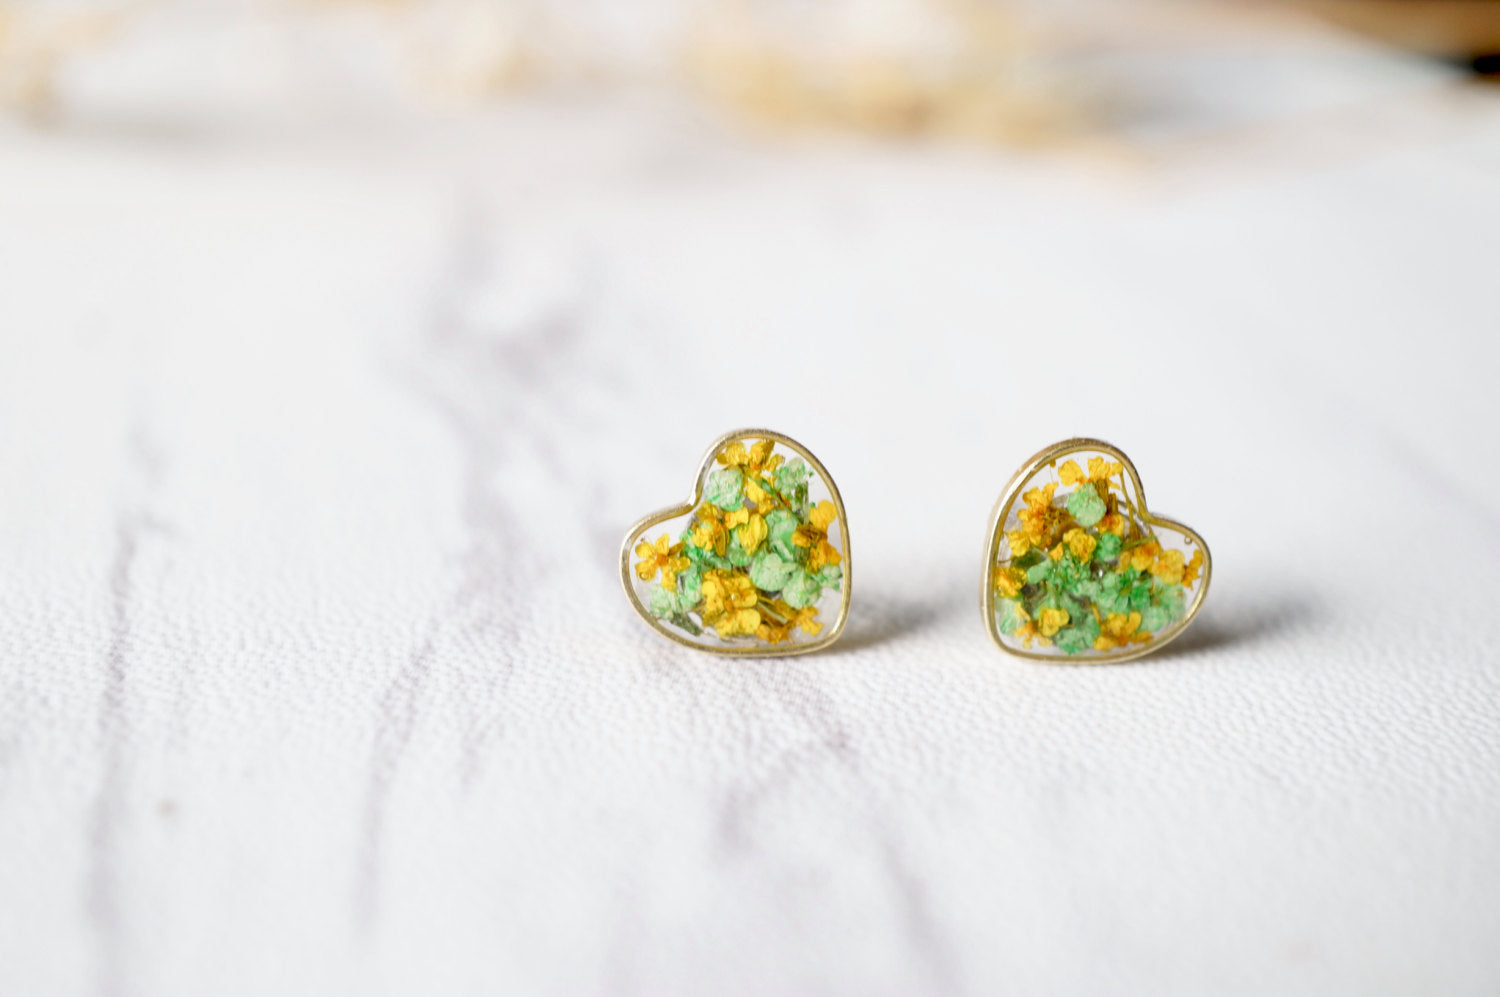 Real Dried Flowers and Resin Heart Stud Earrings in Yellow Green